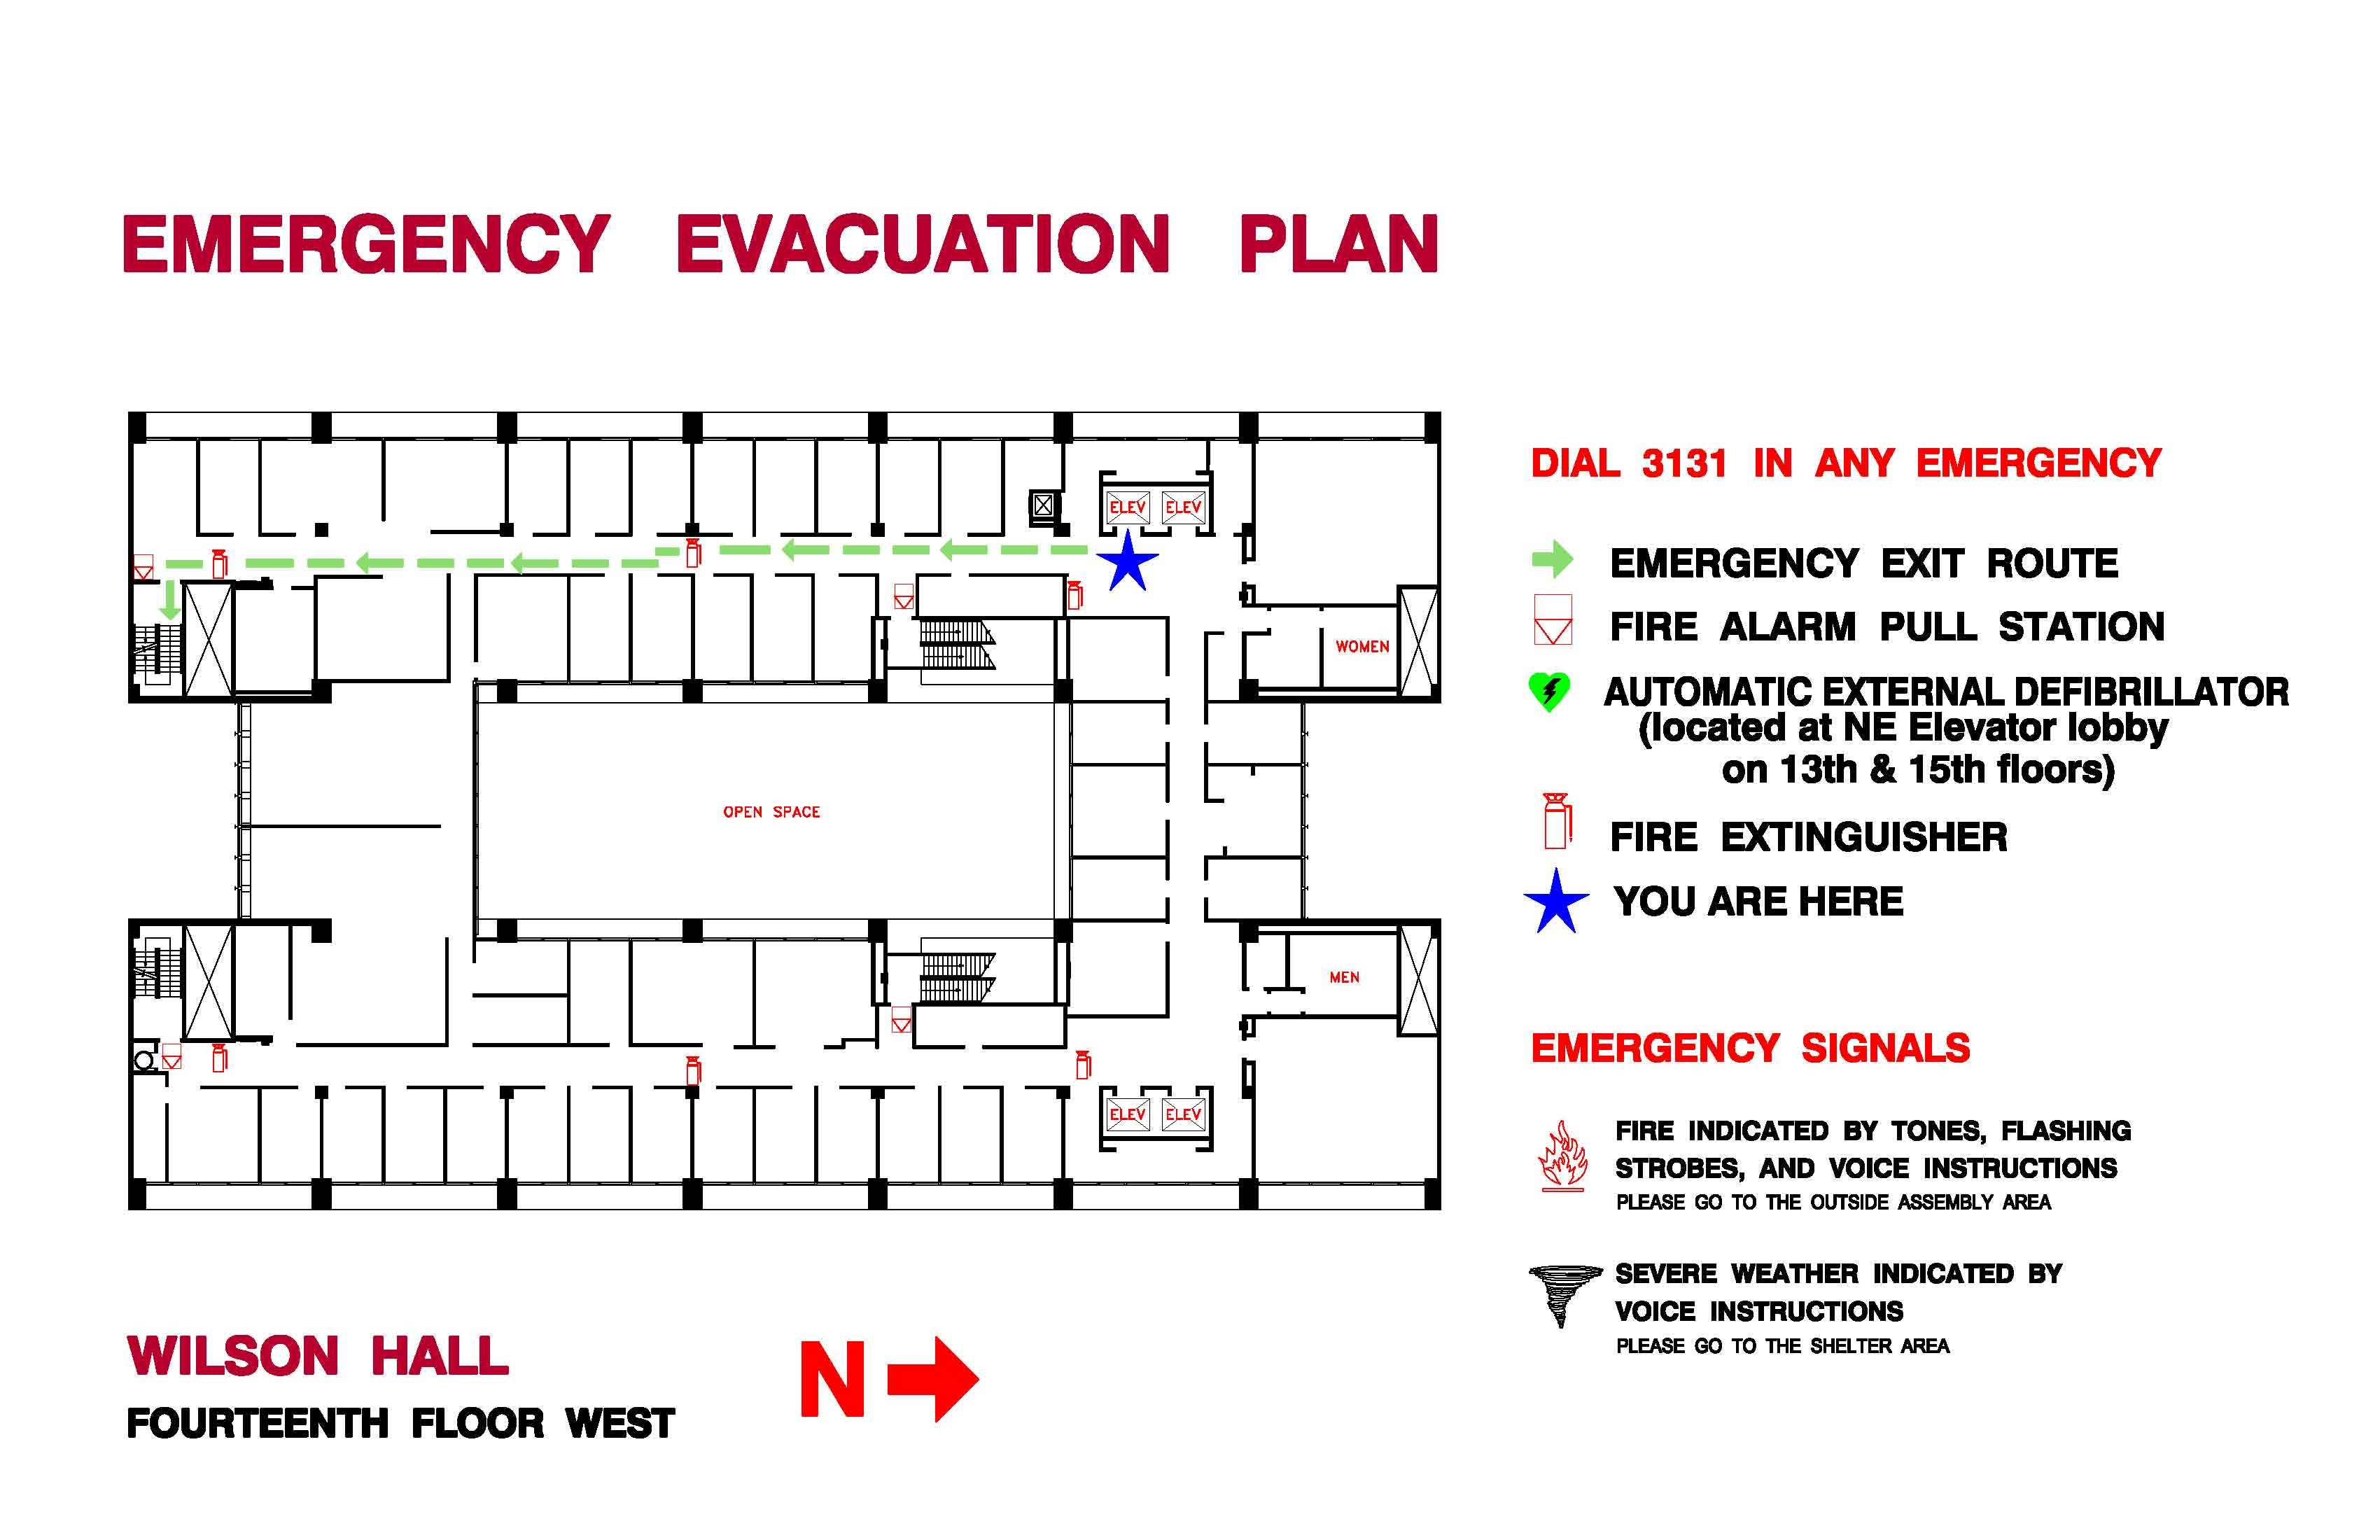 Medical office evacuation plan images for Fire plans